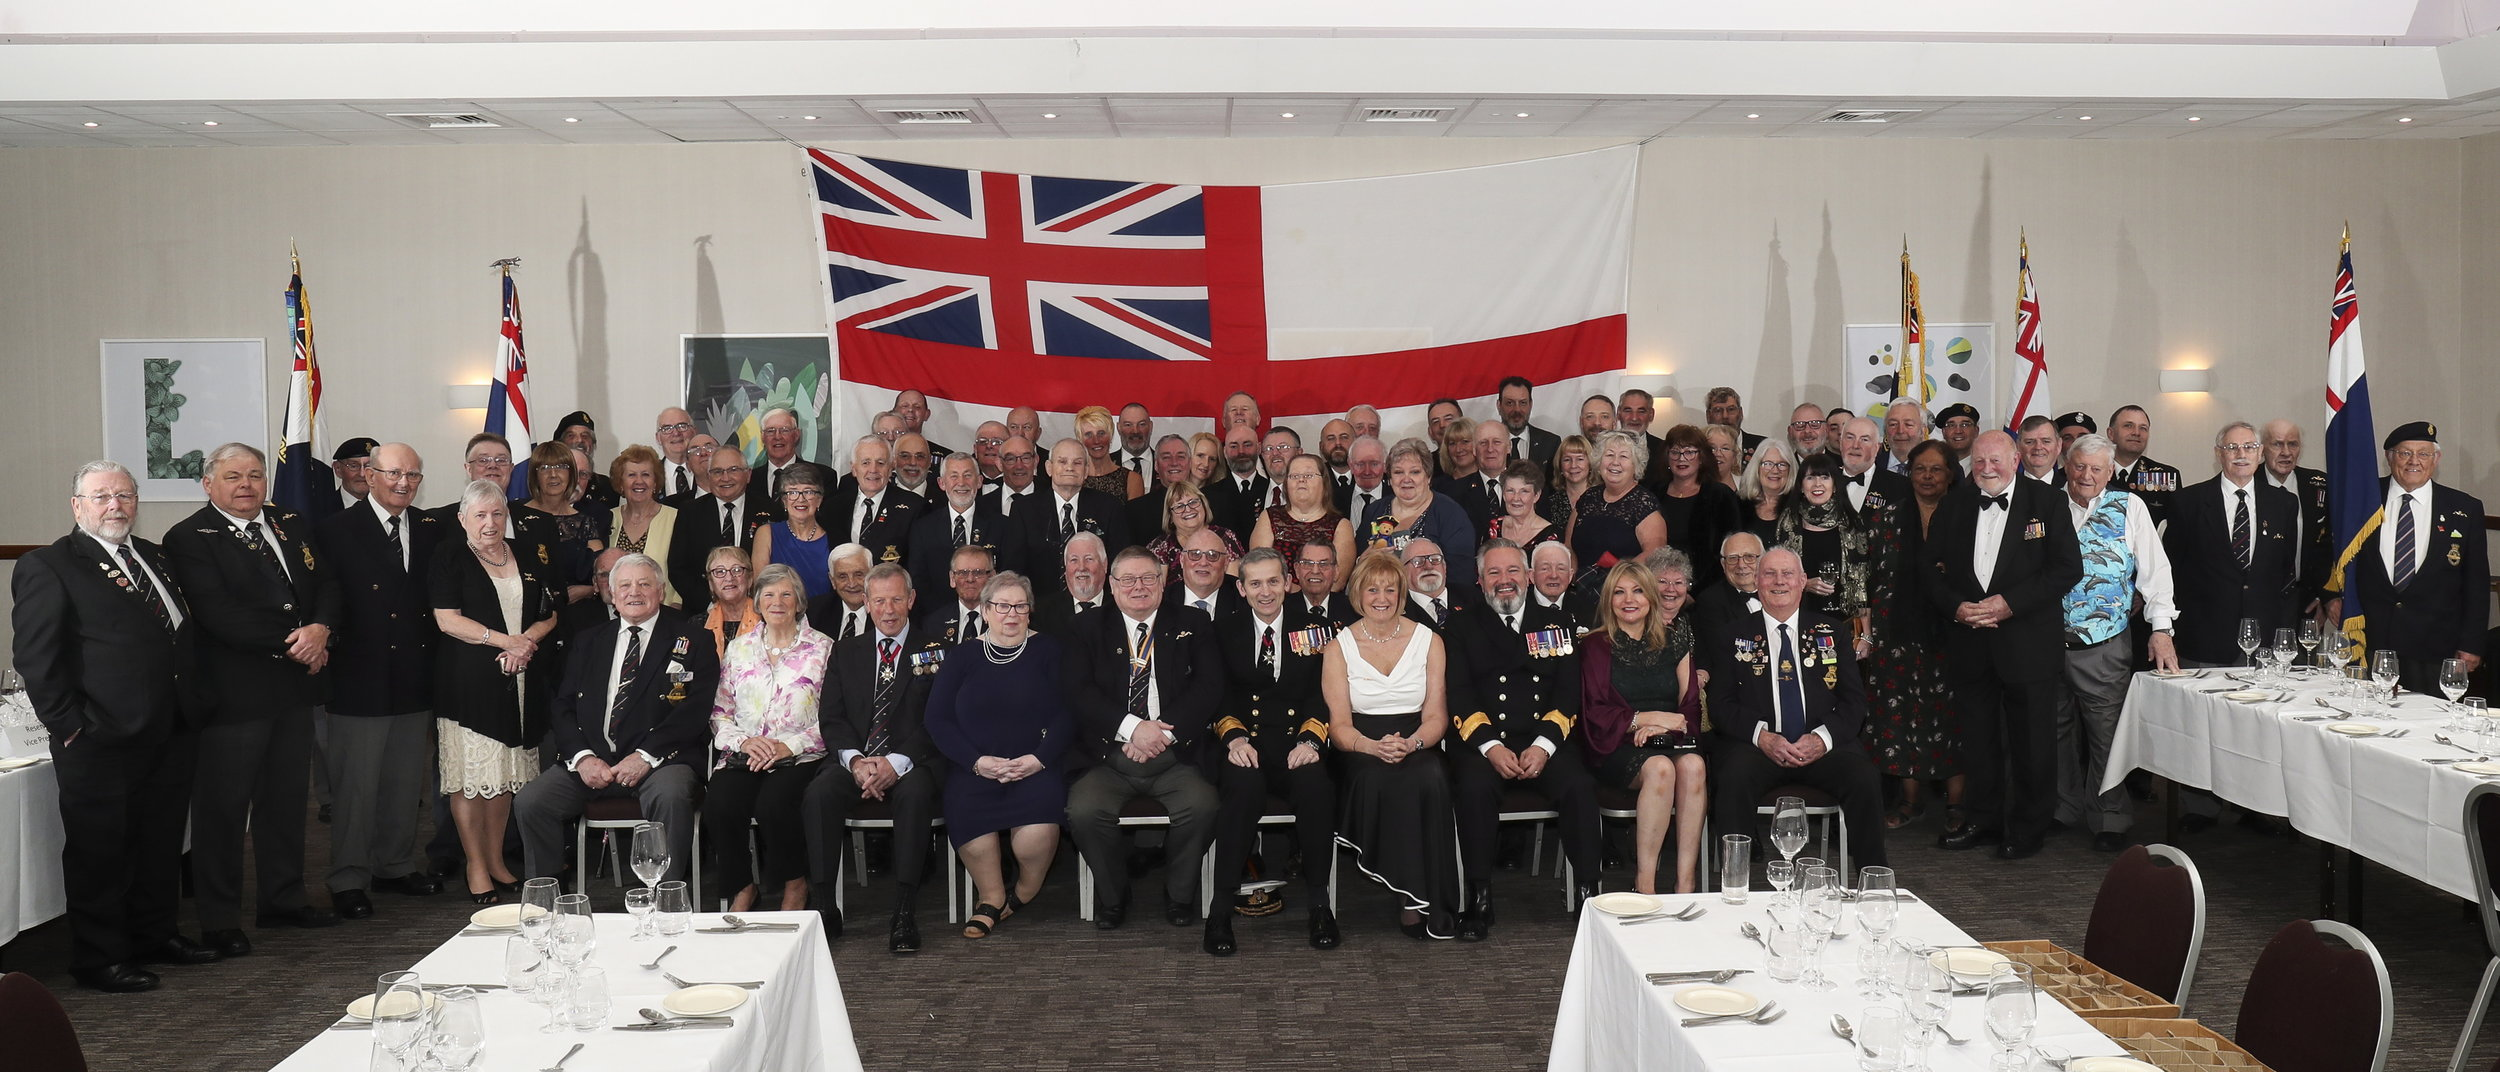 Submariners Association AGM -  photocredit RN phot Belinda Alker